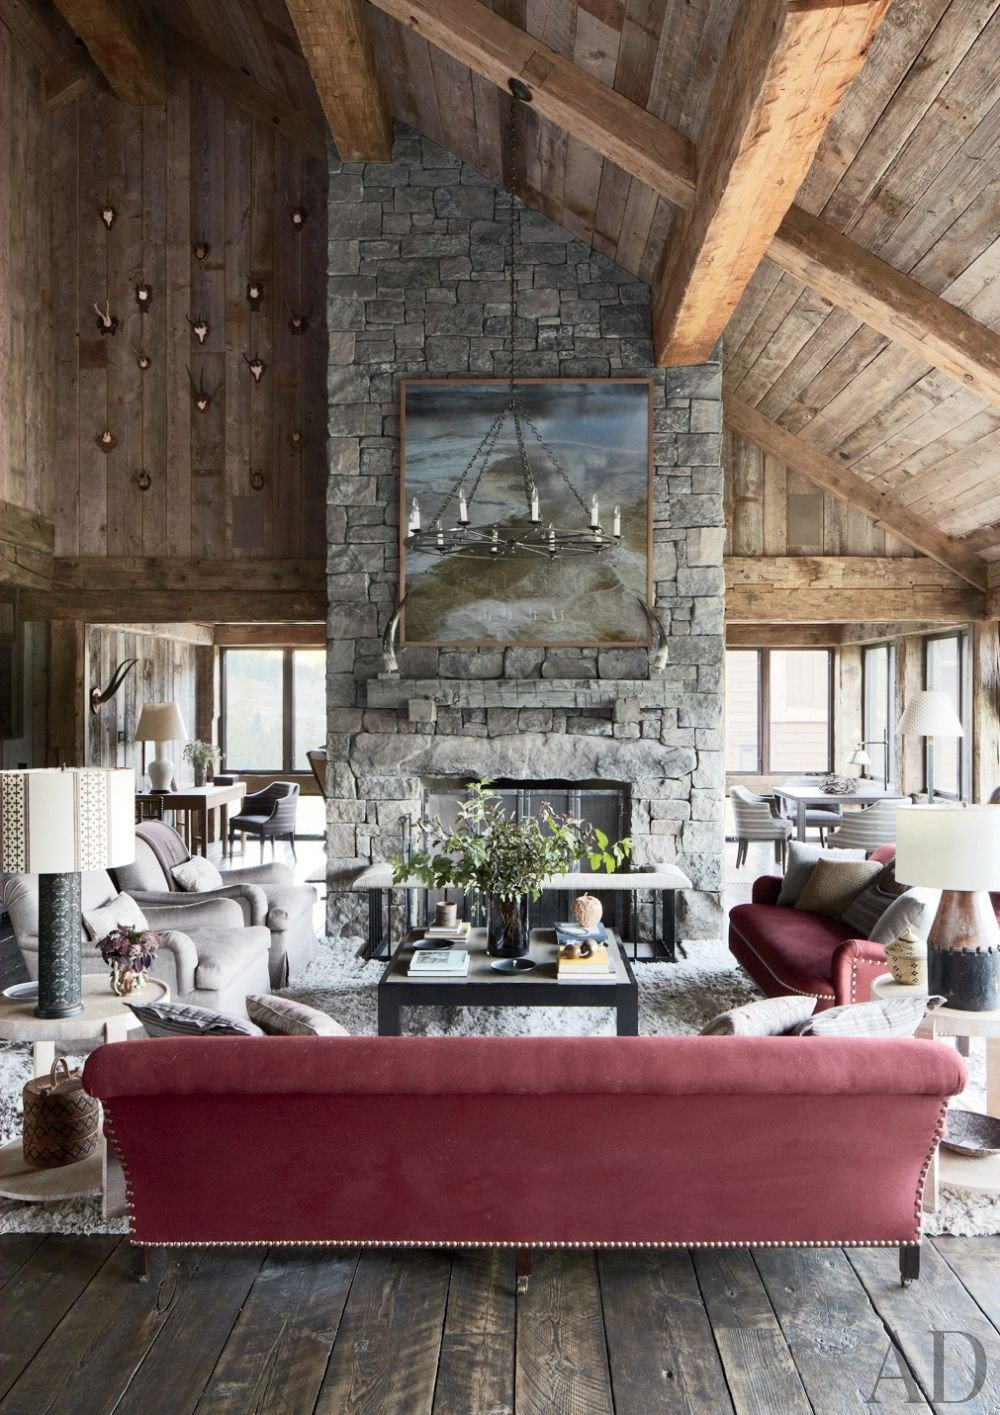 Wall Decor Ideas In Your Living Room Fresh 15 Rustic Home Decor Ideas for Your Living Room